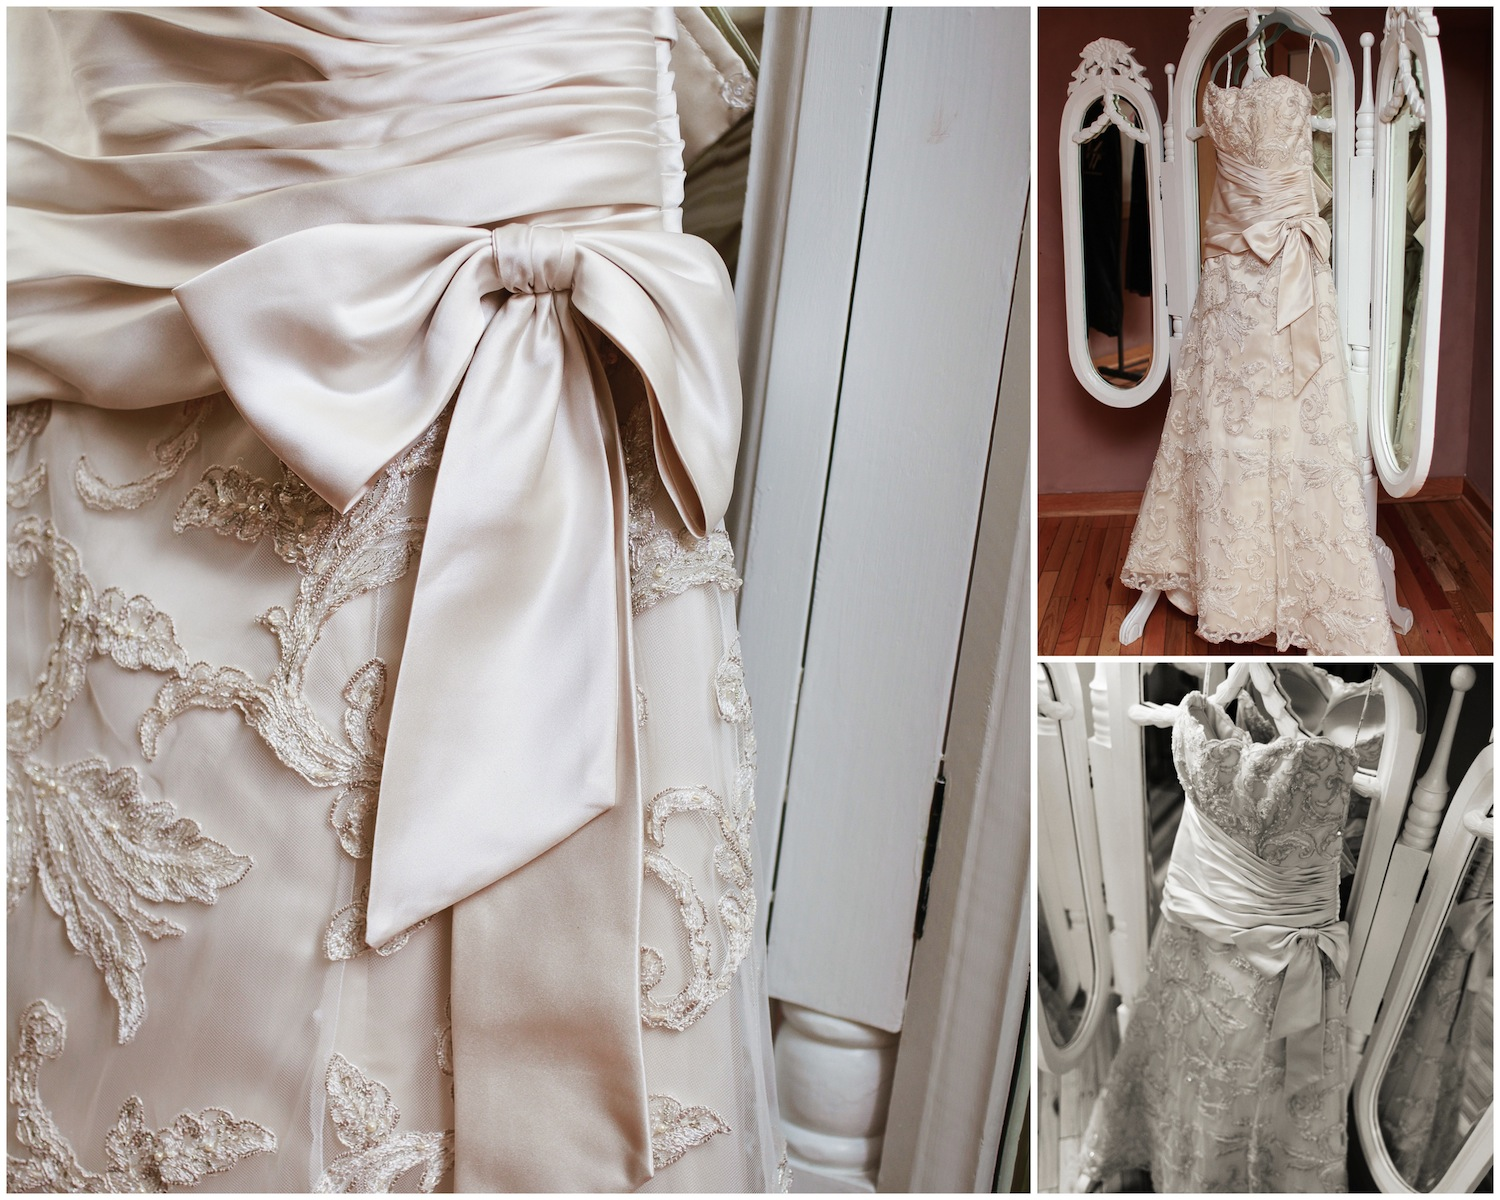 Can I talk about my wedding dress for a second?